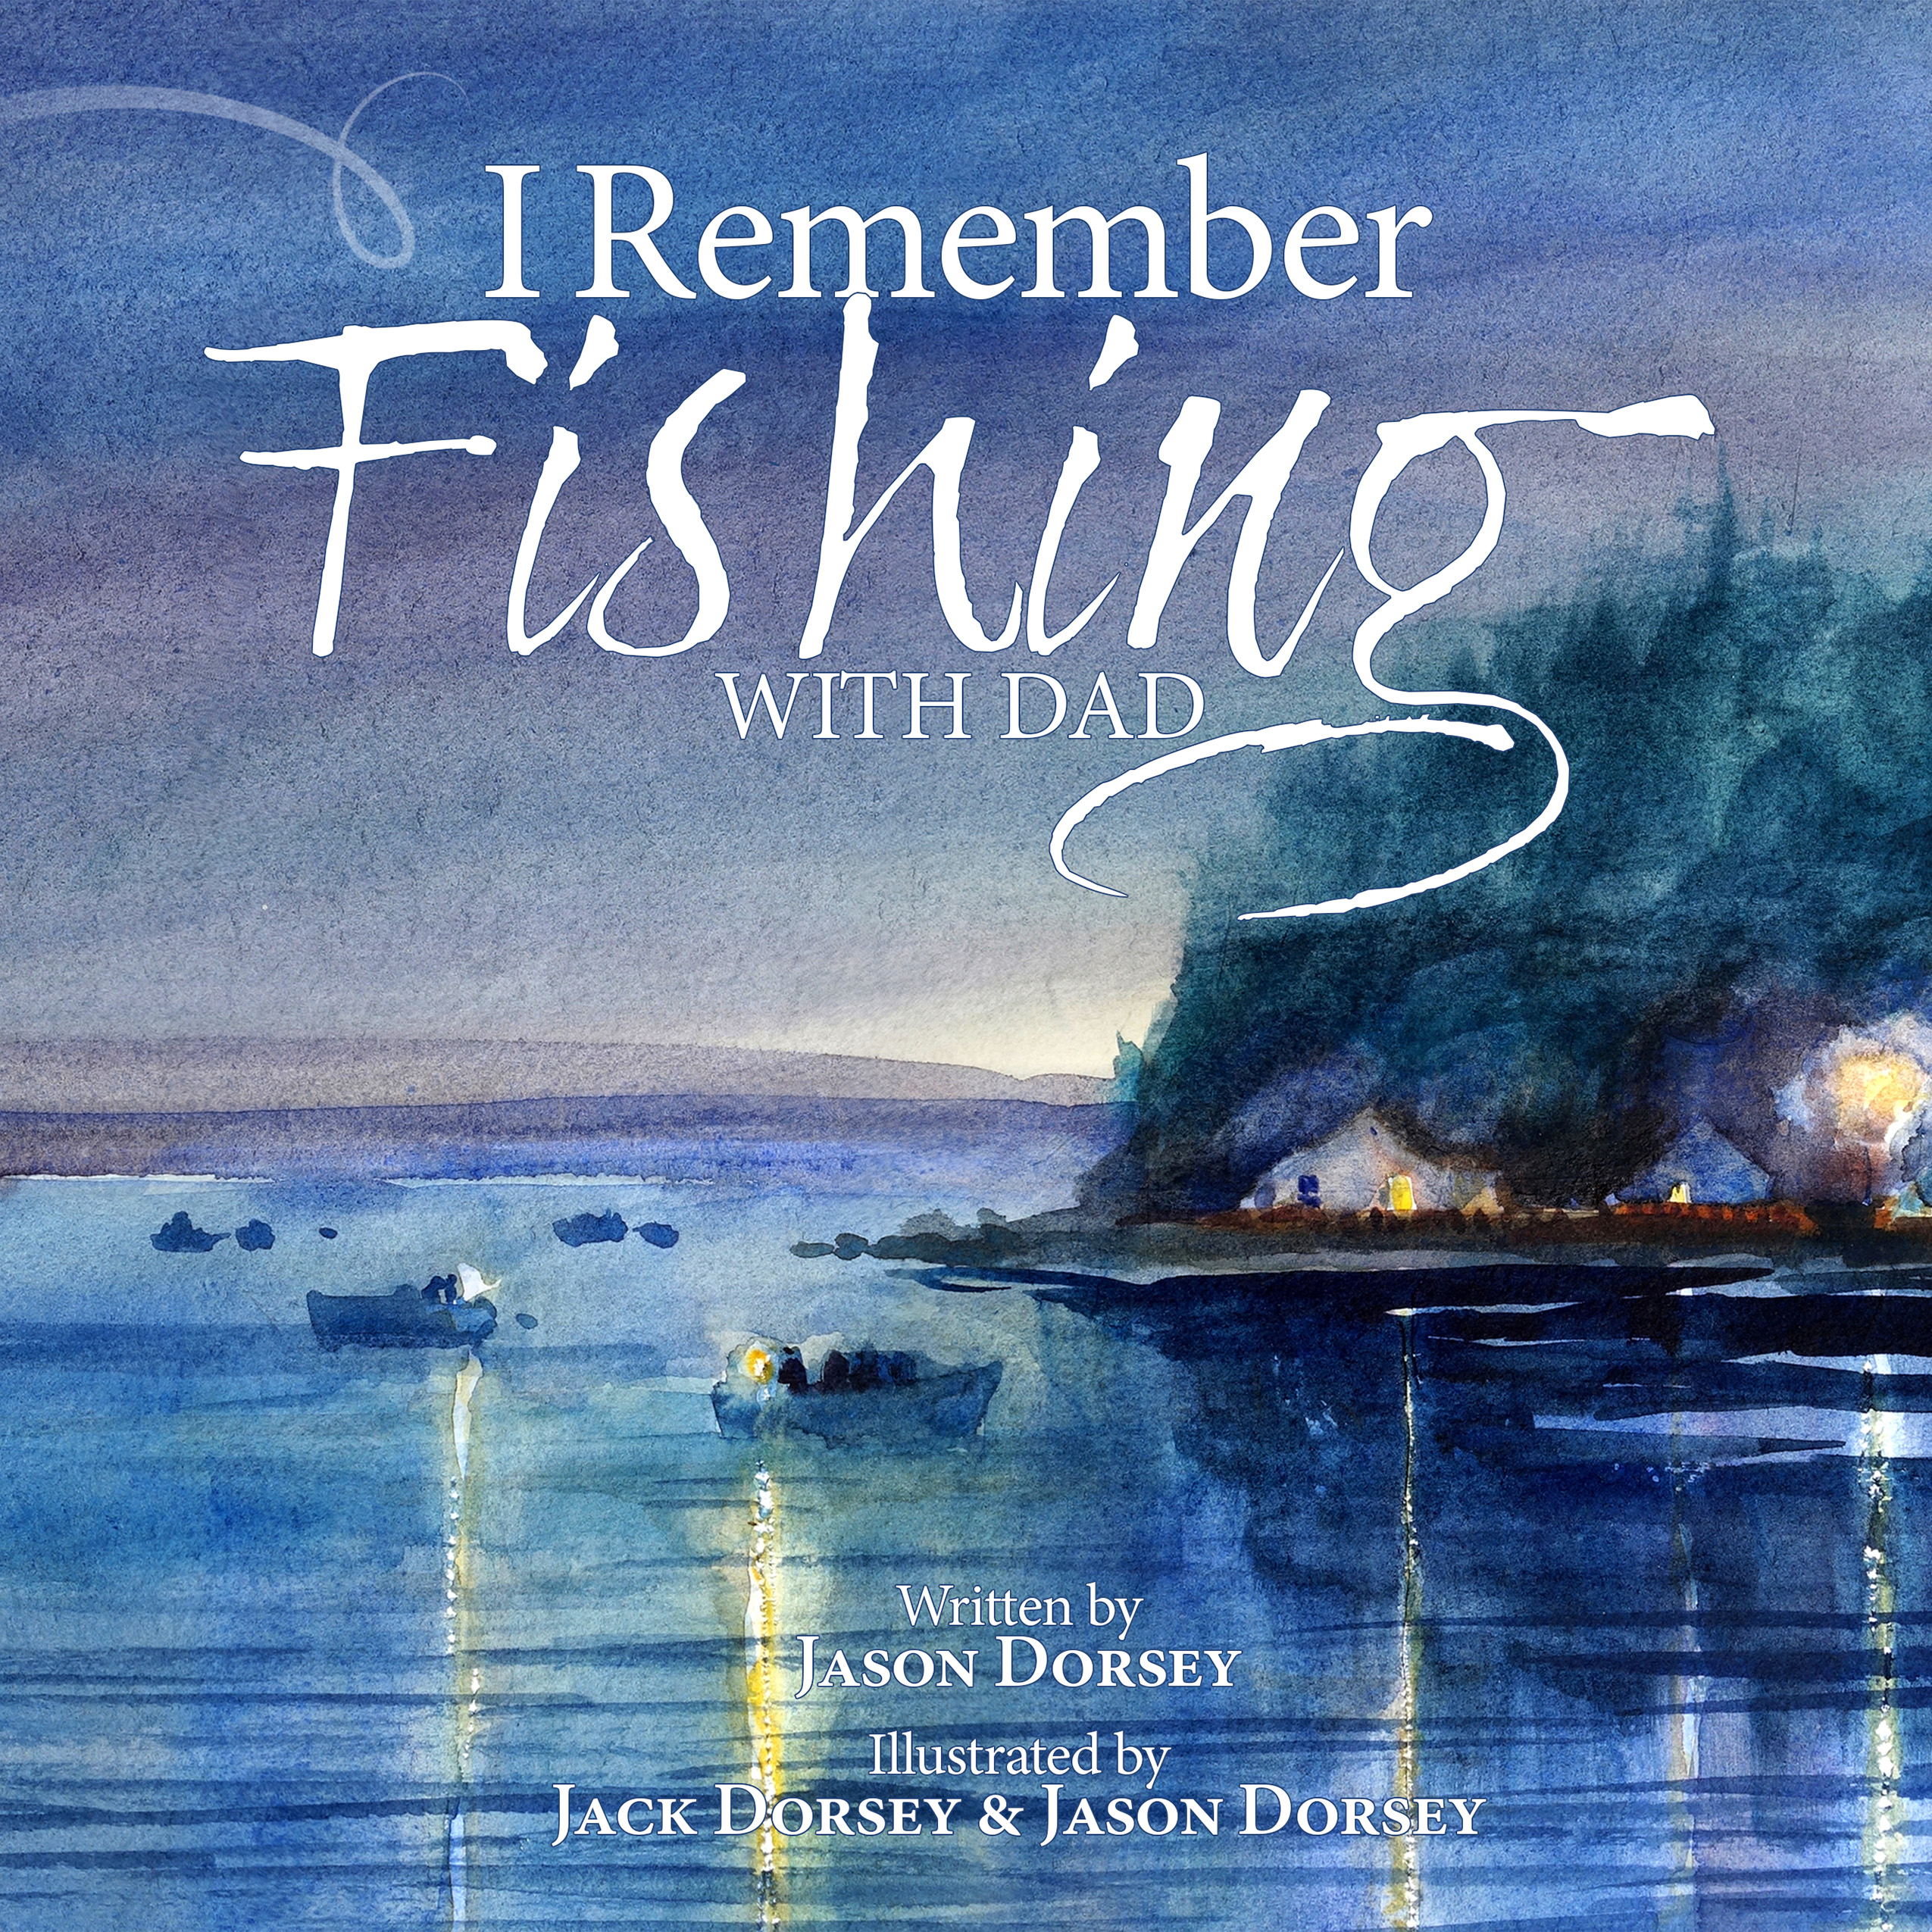 Book $19.95 – I Remember Fishing With Dad